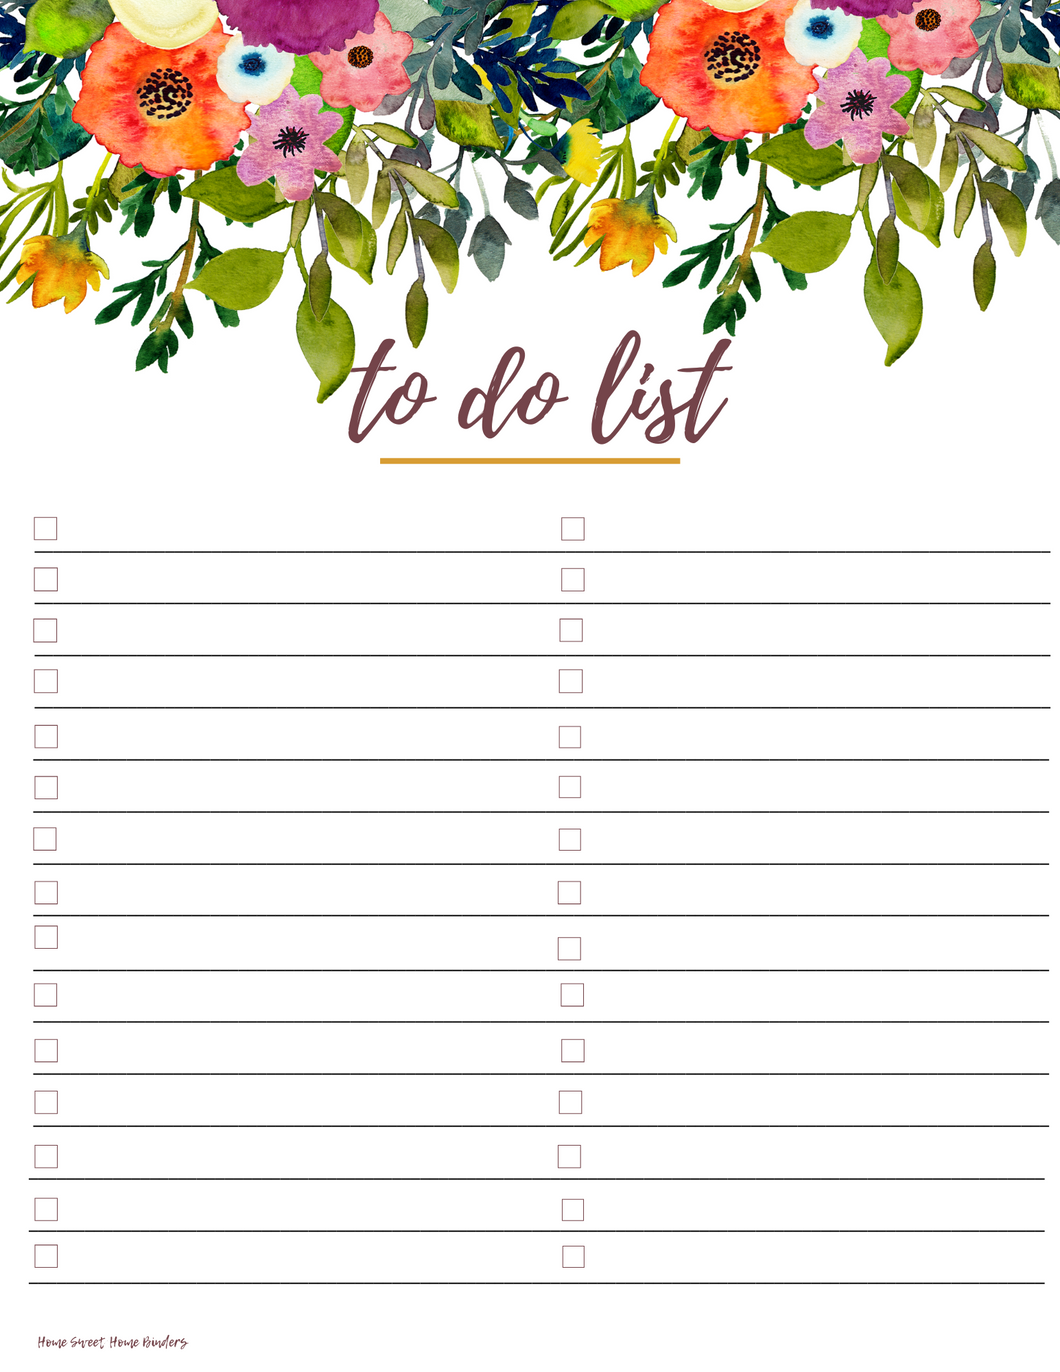 To Do List: Falling Blossoms Collection